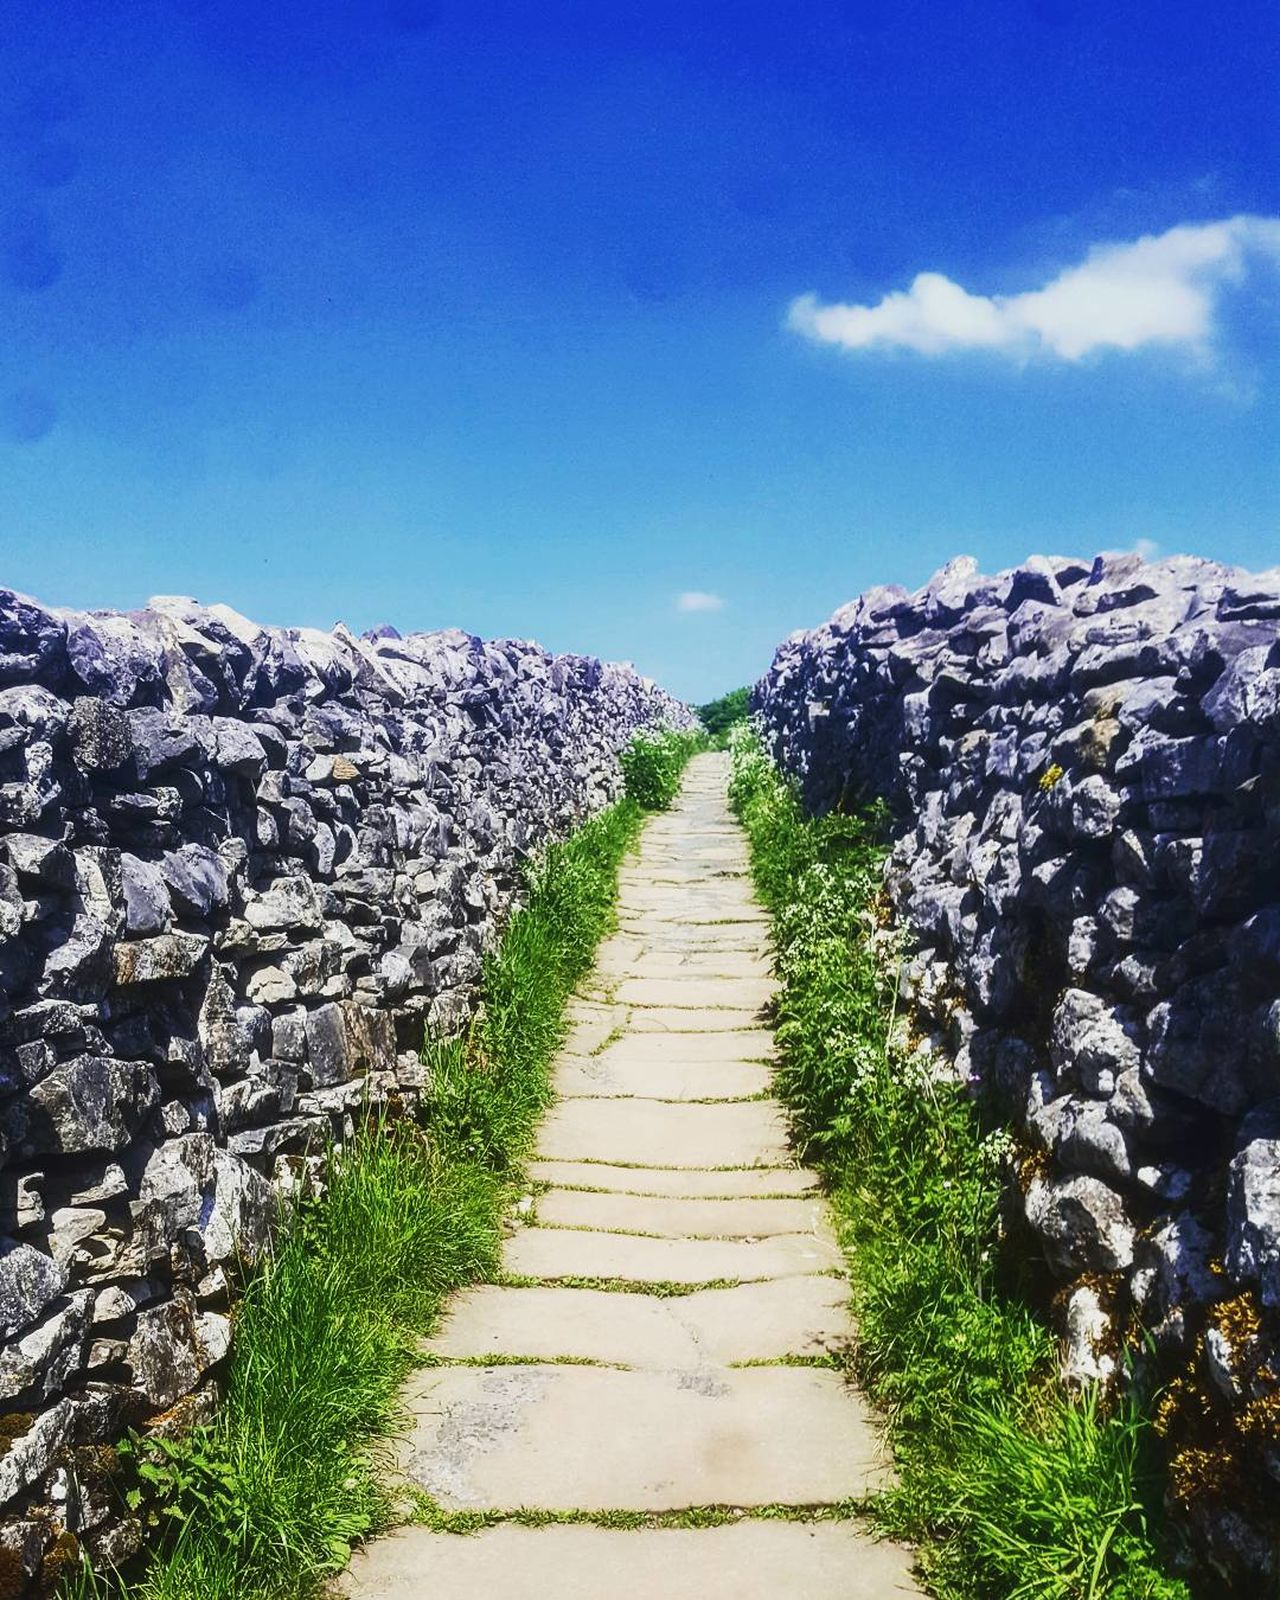 I will get to the top of my mountain. I will feel well. I will conquer it. This is my time. My space. My outdoors. My wellbeing. My summer. This is me. Yorkshire Beautiful Nature Outdoors Agriculture The Way Forward Sky Day Cloud - Sky No People Scenics Landscape Nature Beauty In Nature Yorkshire Dales Yorkshire Landscape The Dalesway Drystonewall Blue Sky Summer